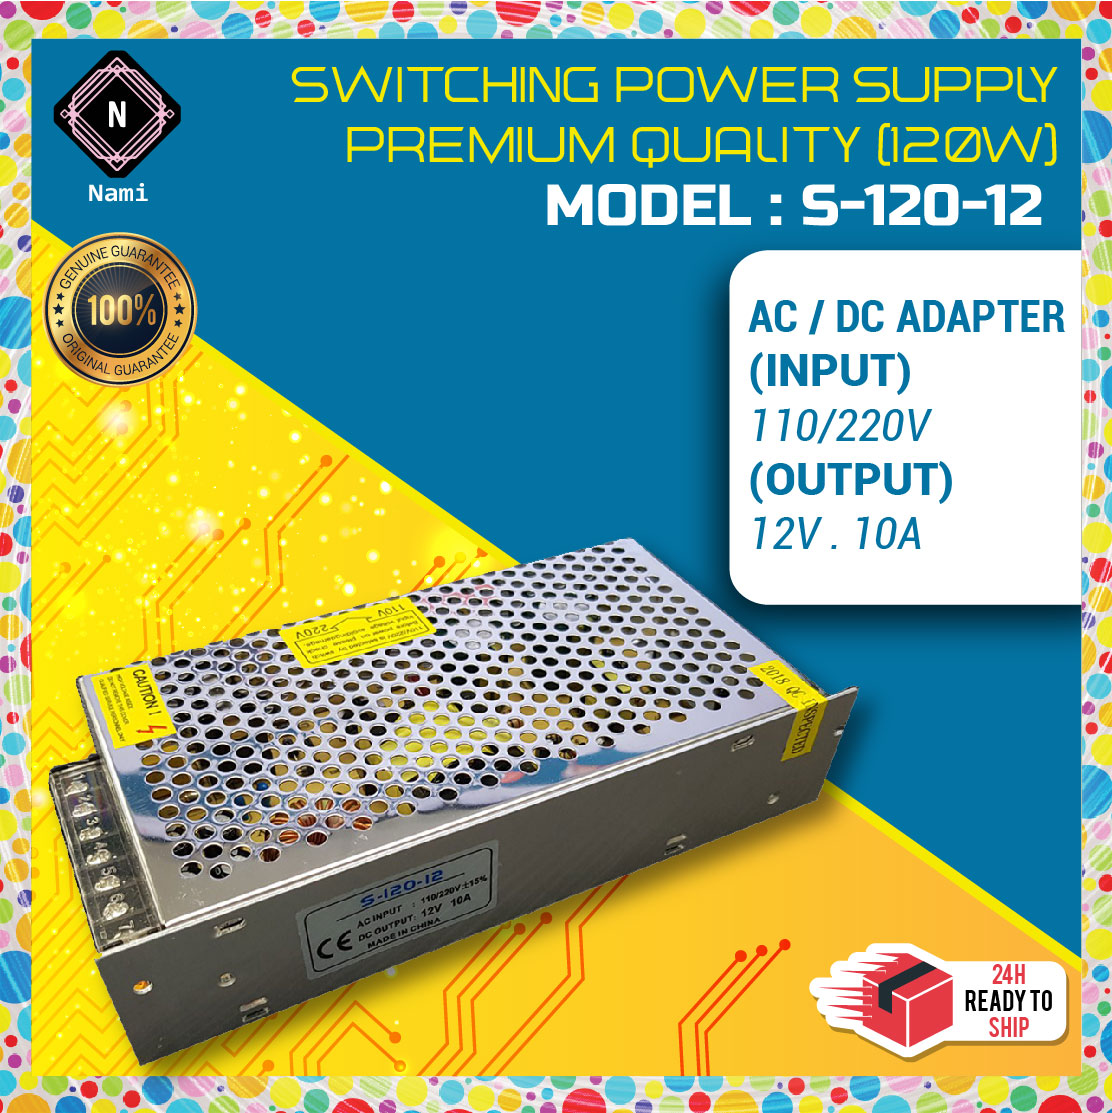 12V 10A Switching Power Supply 120W Premium Quality